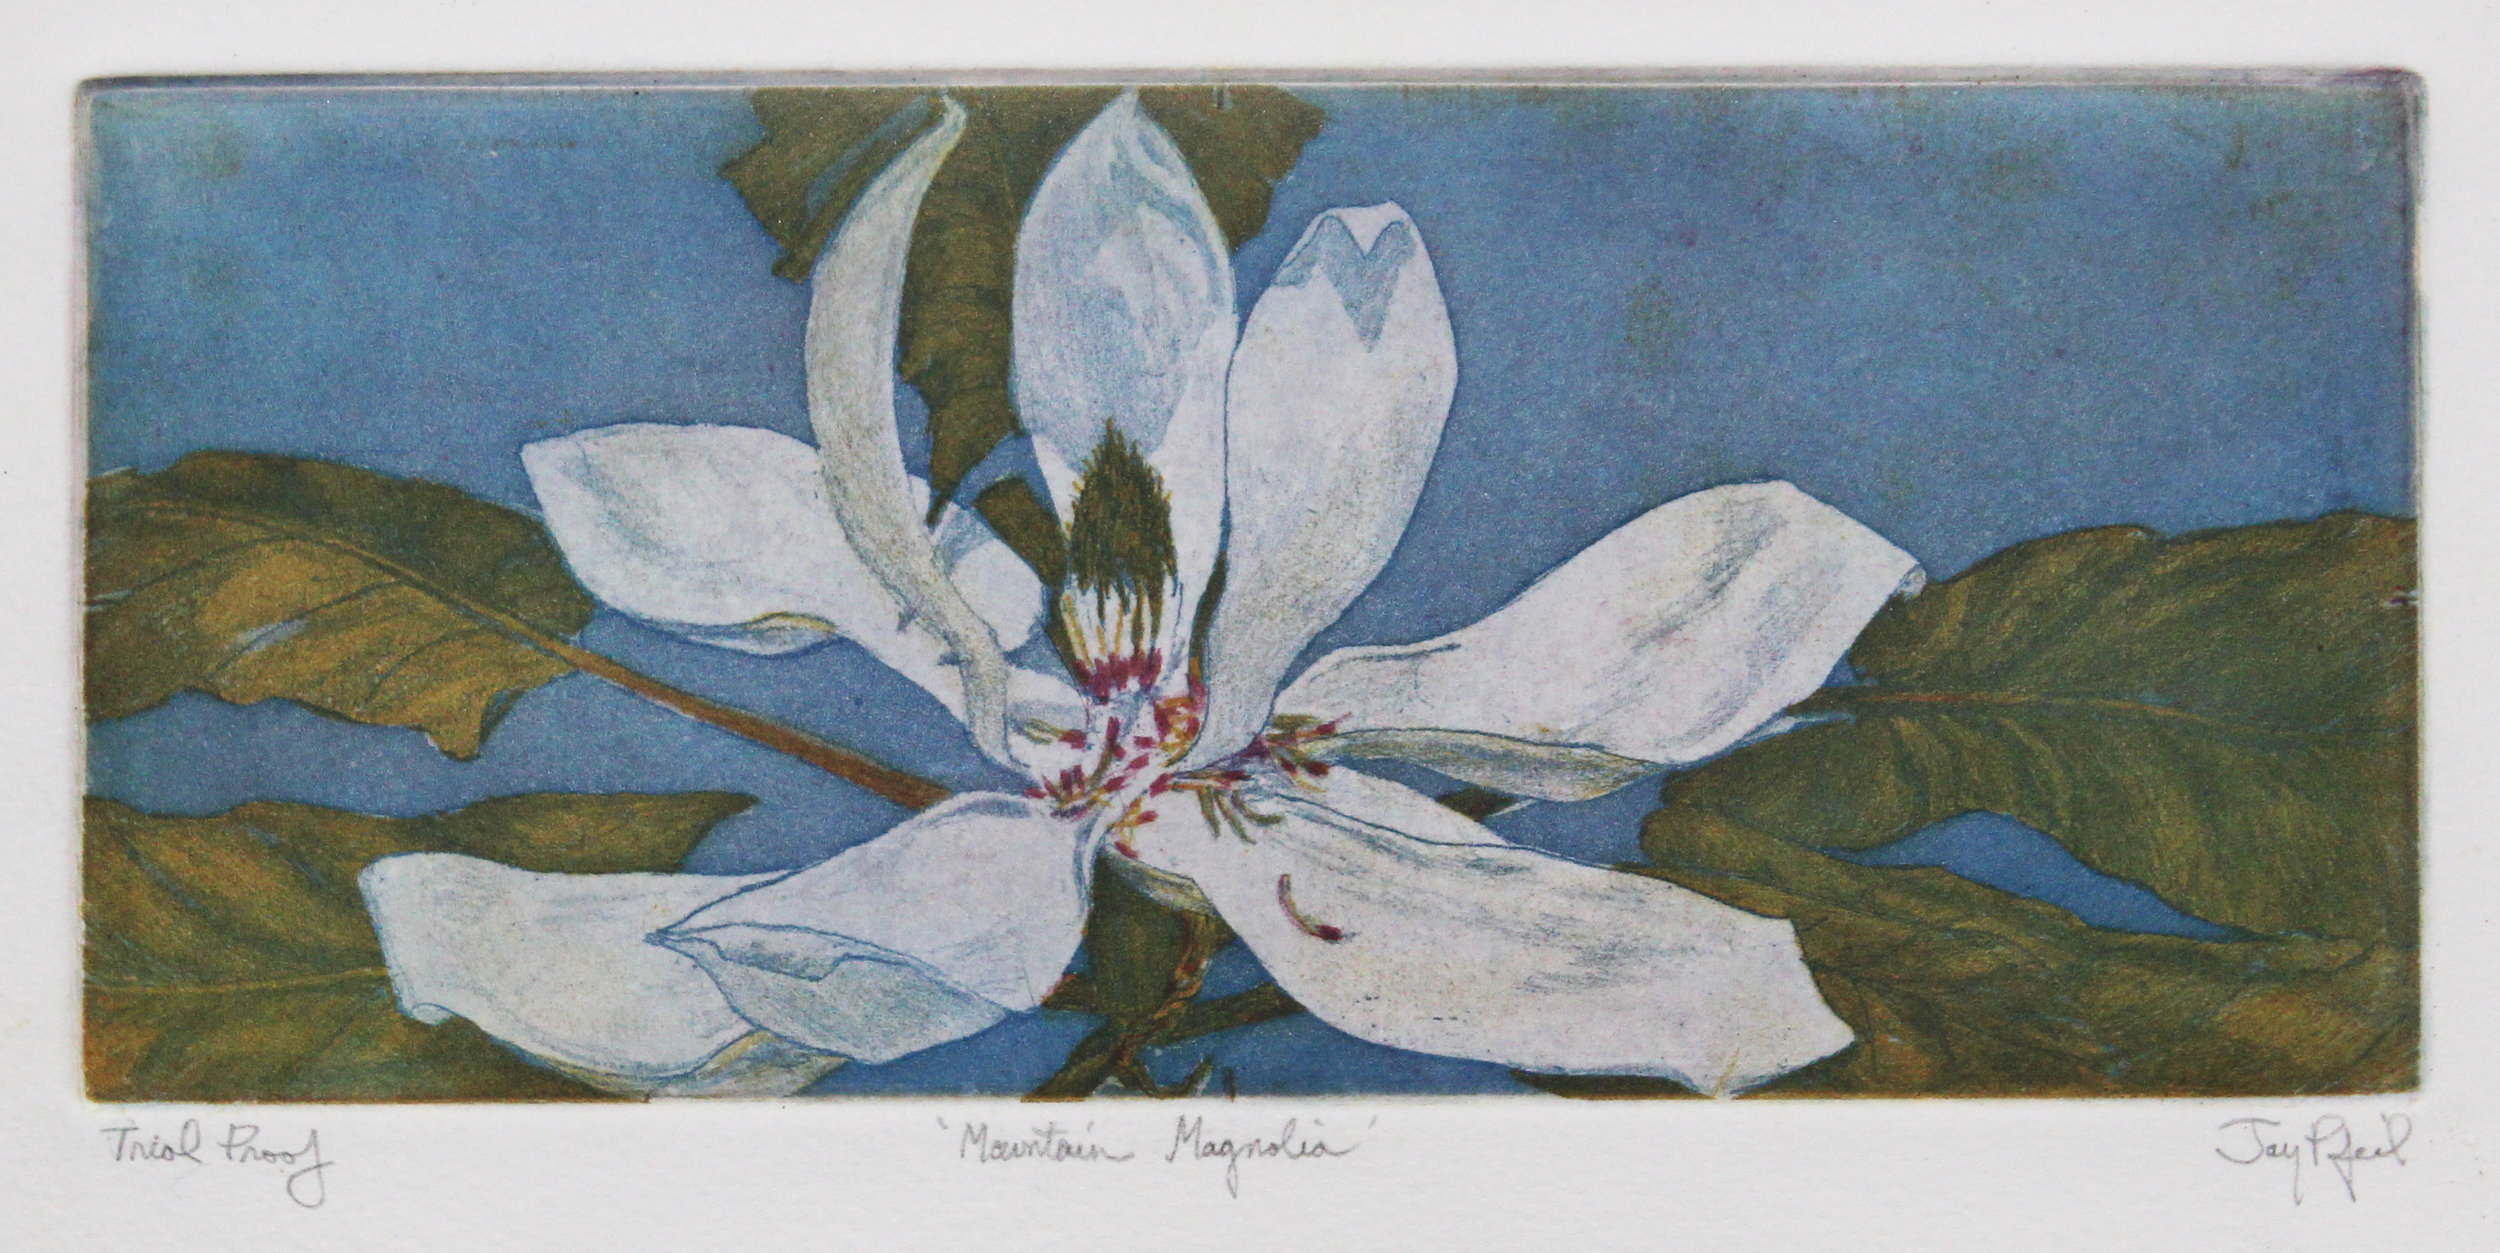 Mountain Magnolia